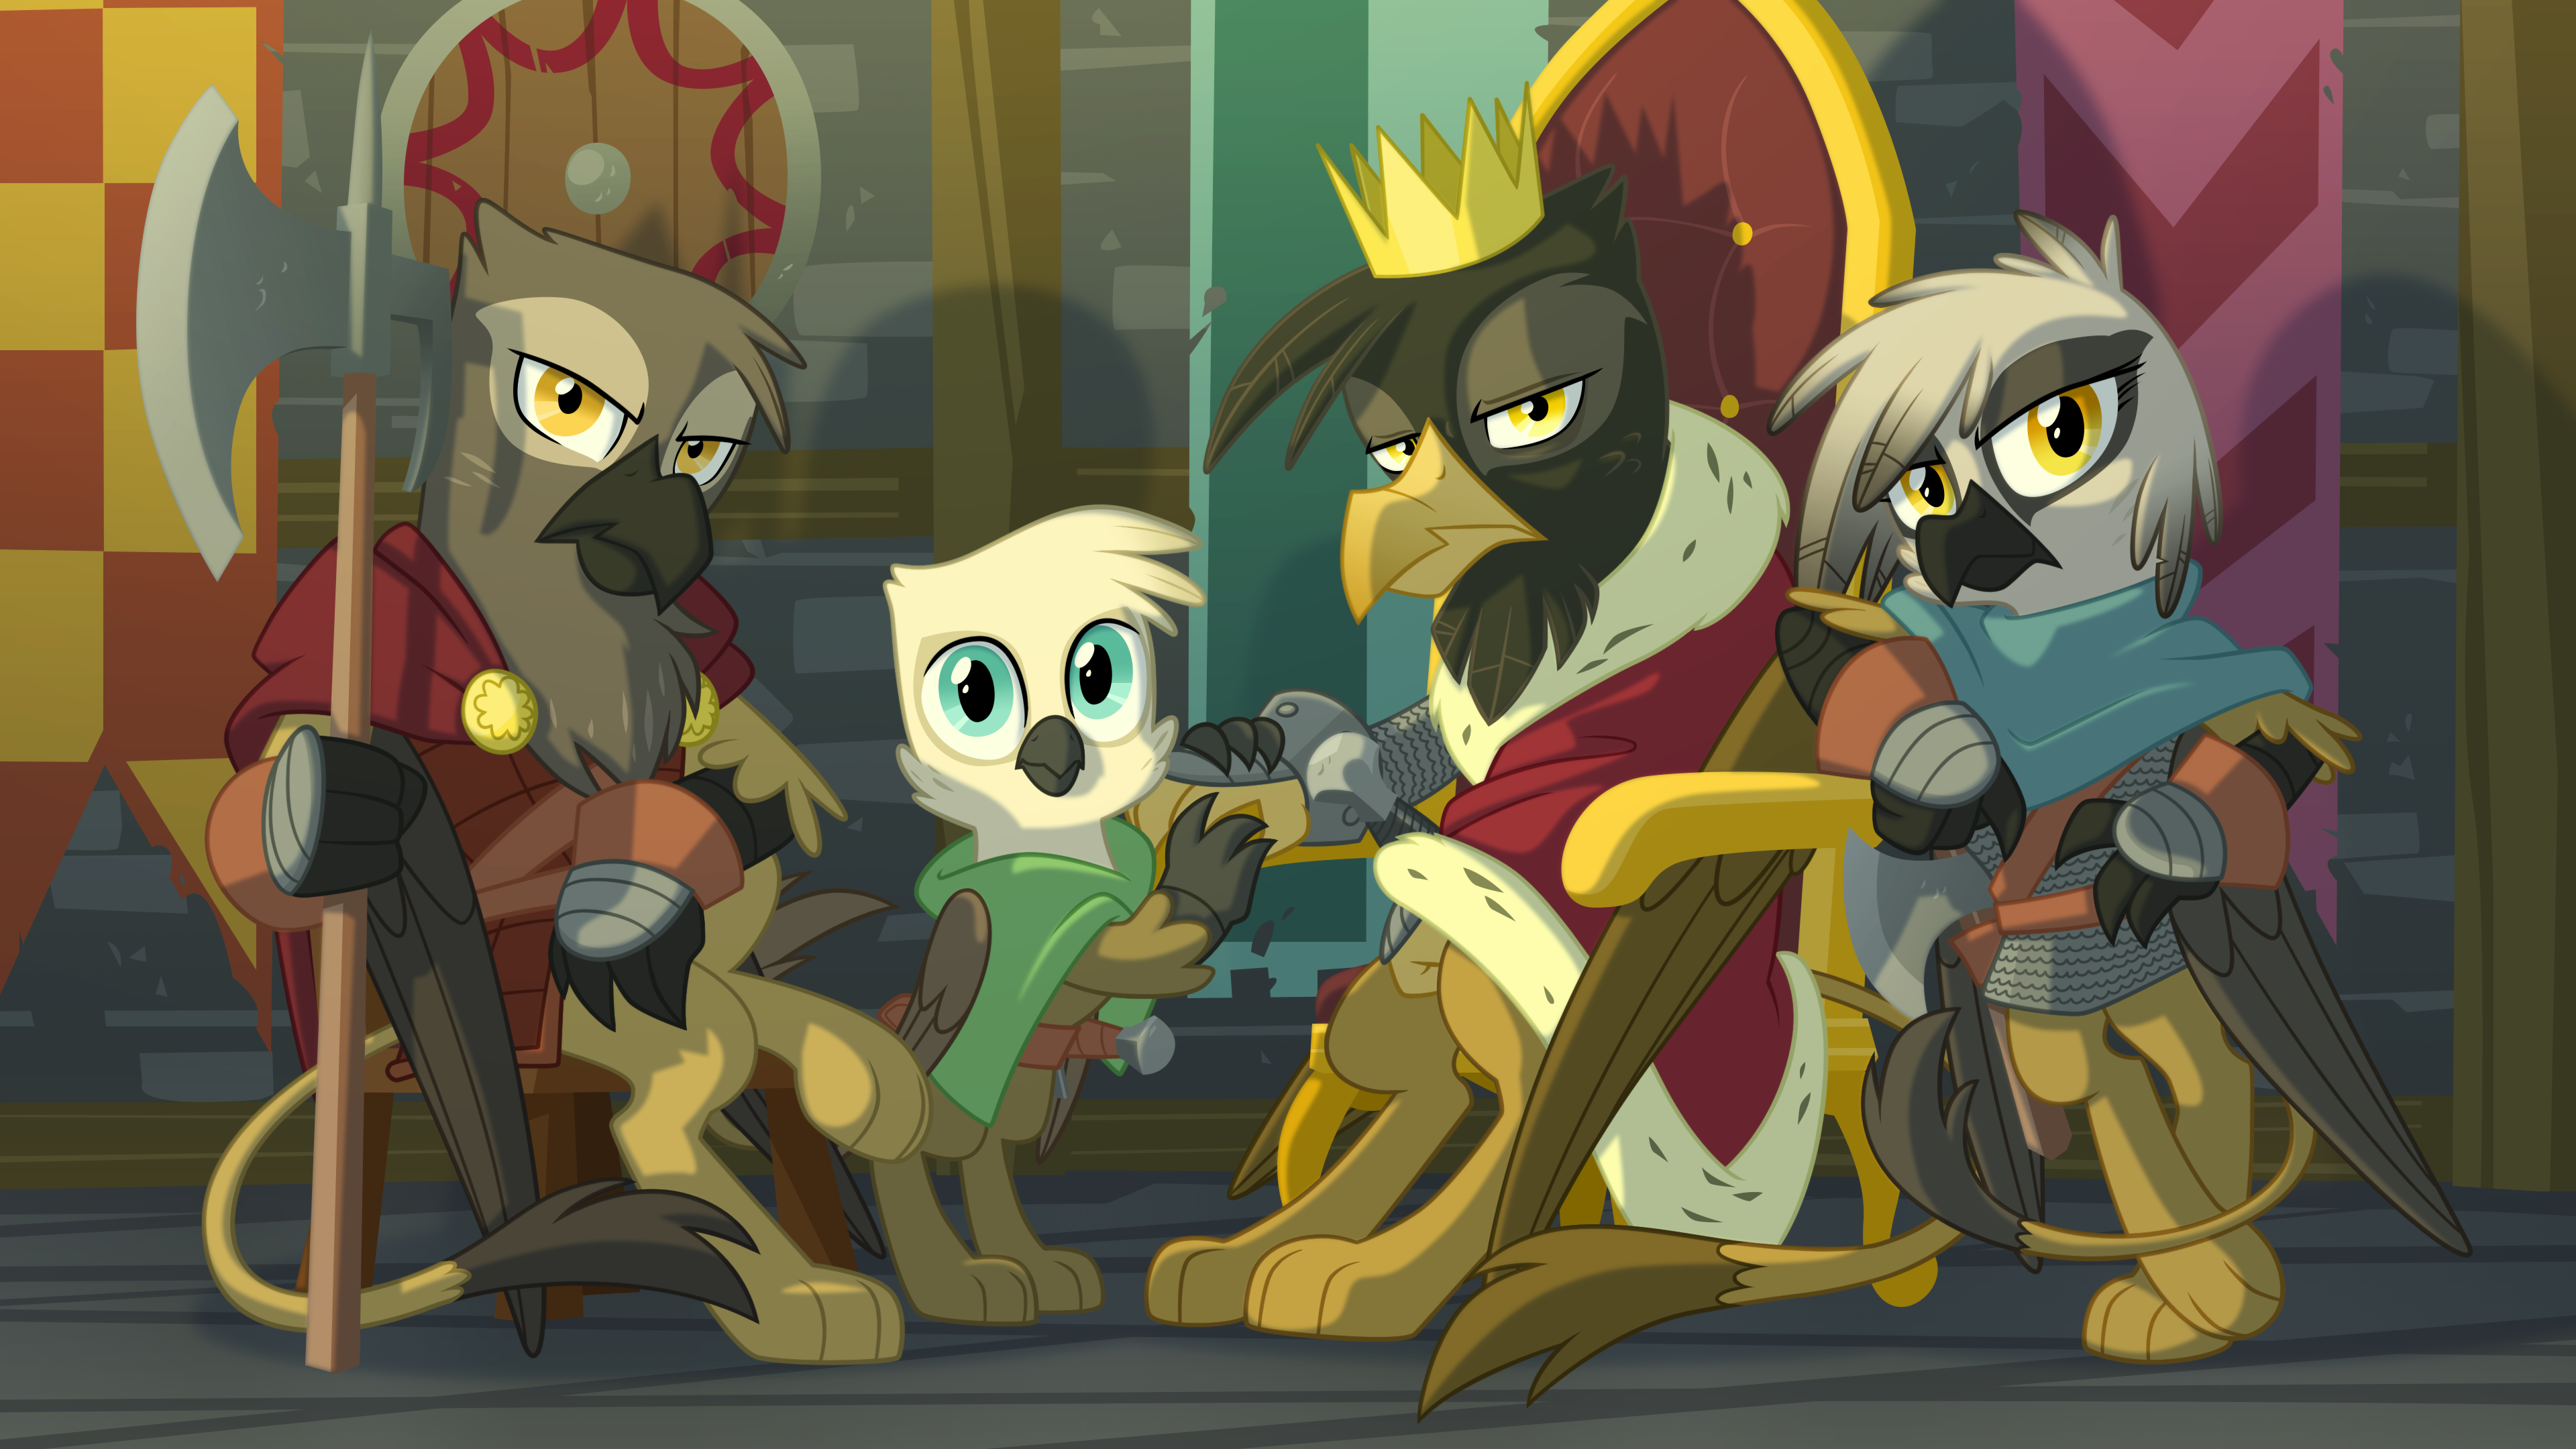 north_griffonia_by_equestria_prevails-d5n70o7.png - -